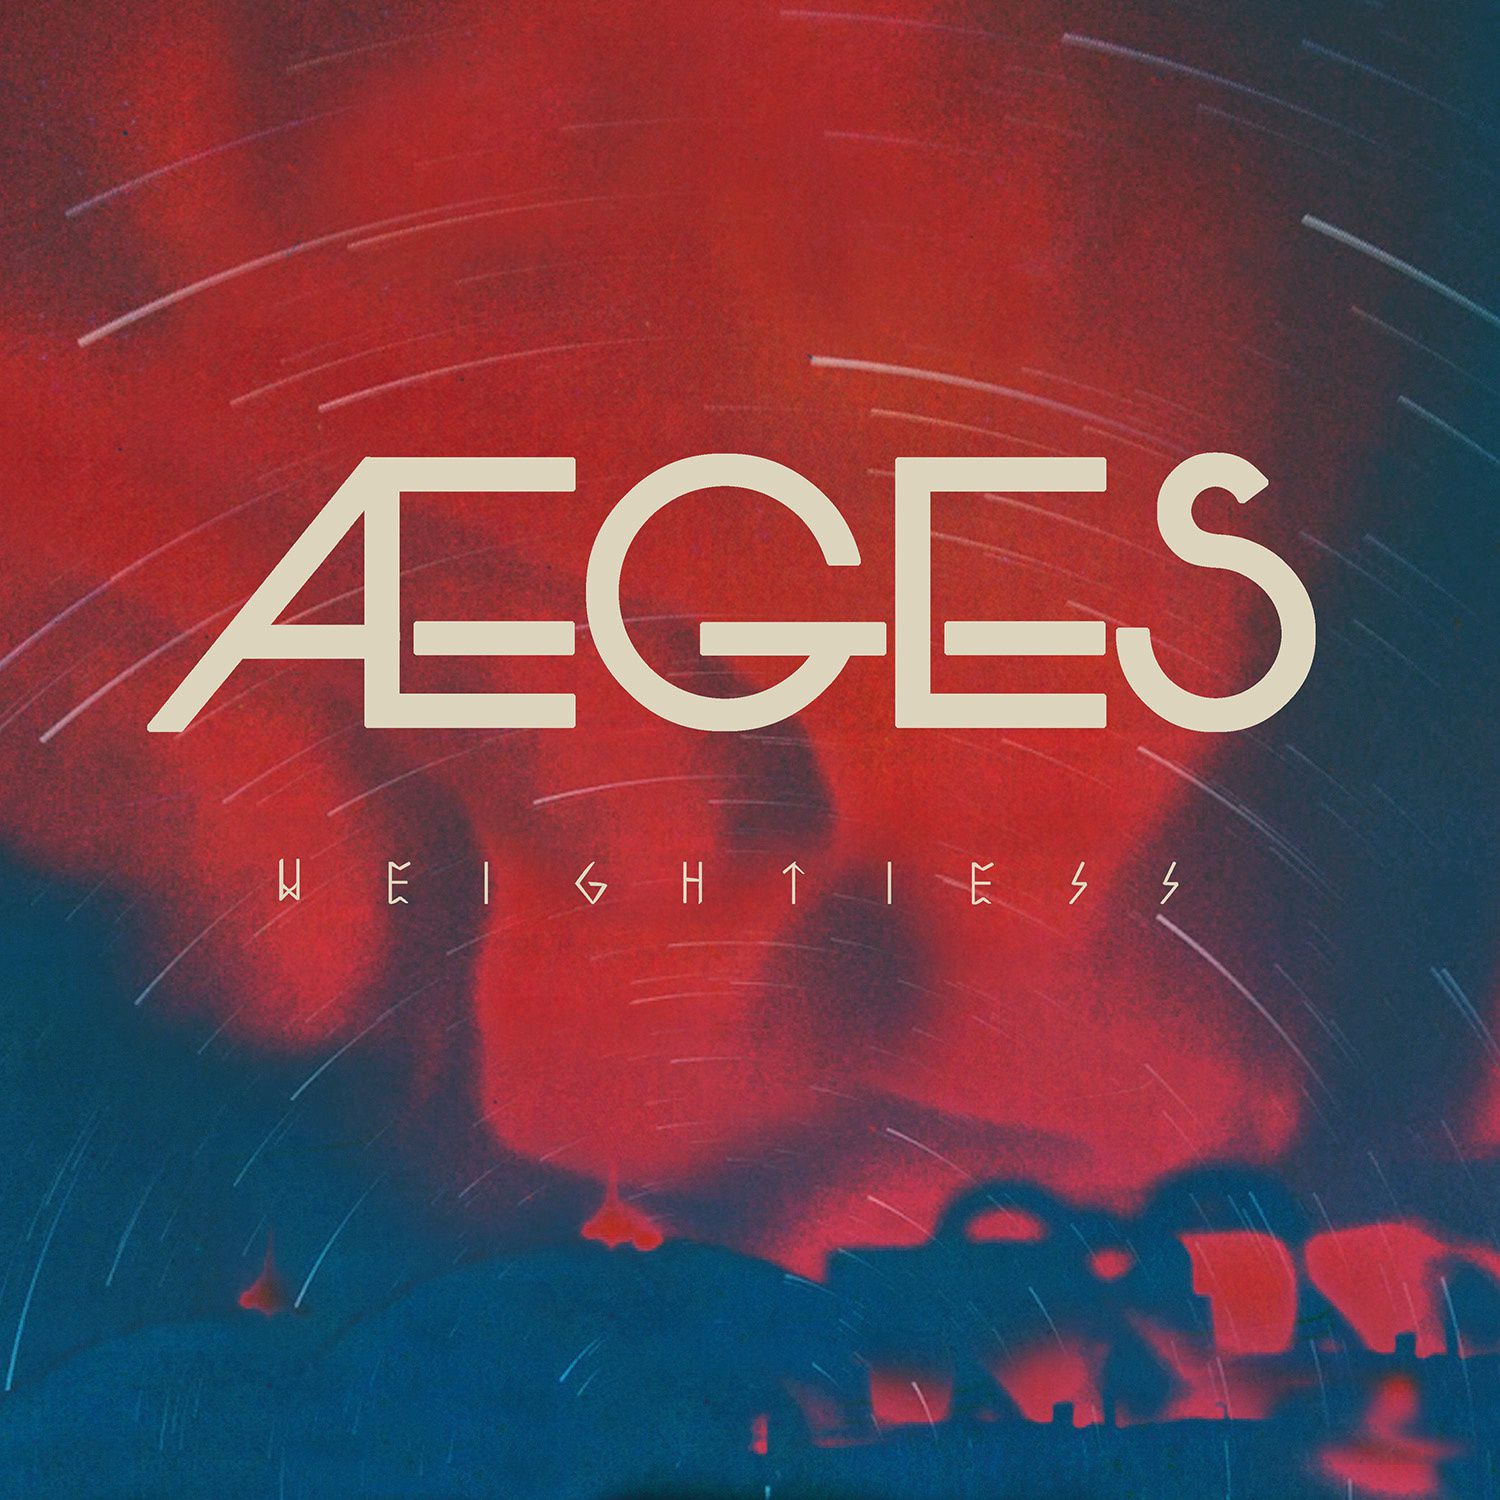 CD review AEGES &quot&#x3B;Weightless&quot&#x3B;